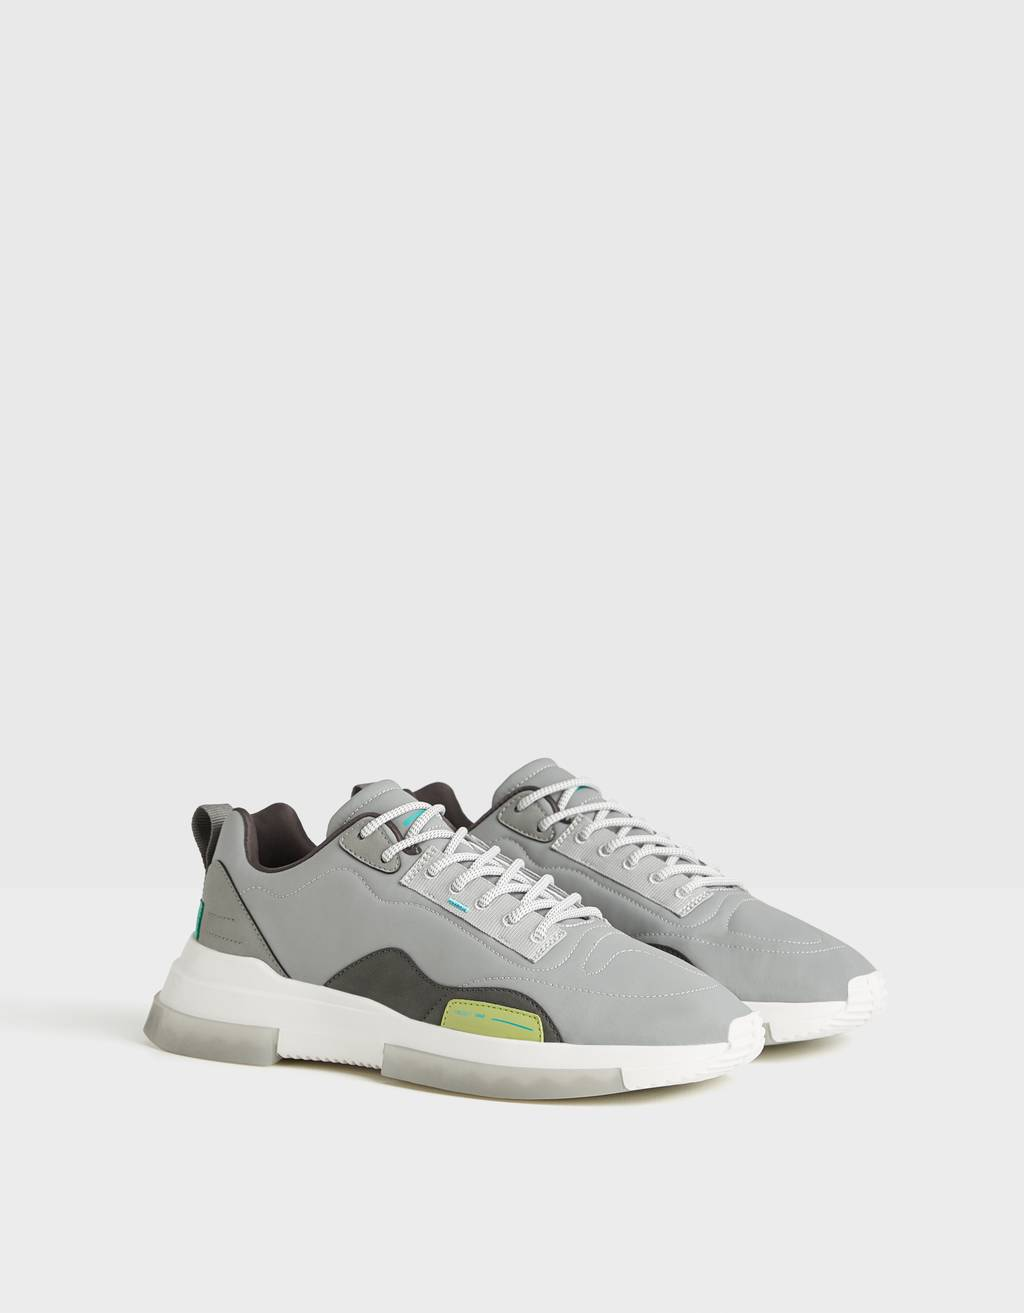 Reflective men's trainers